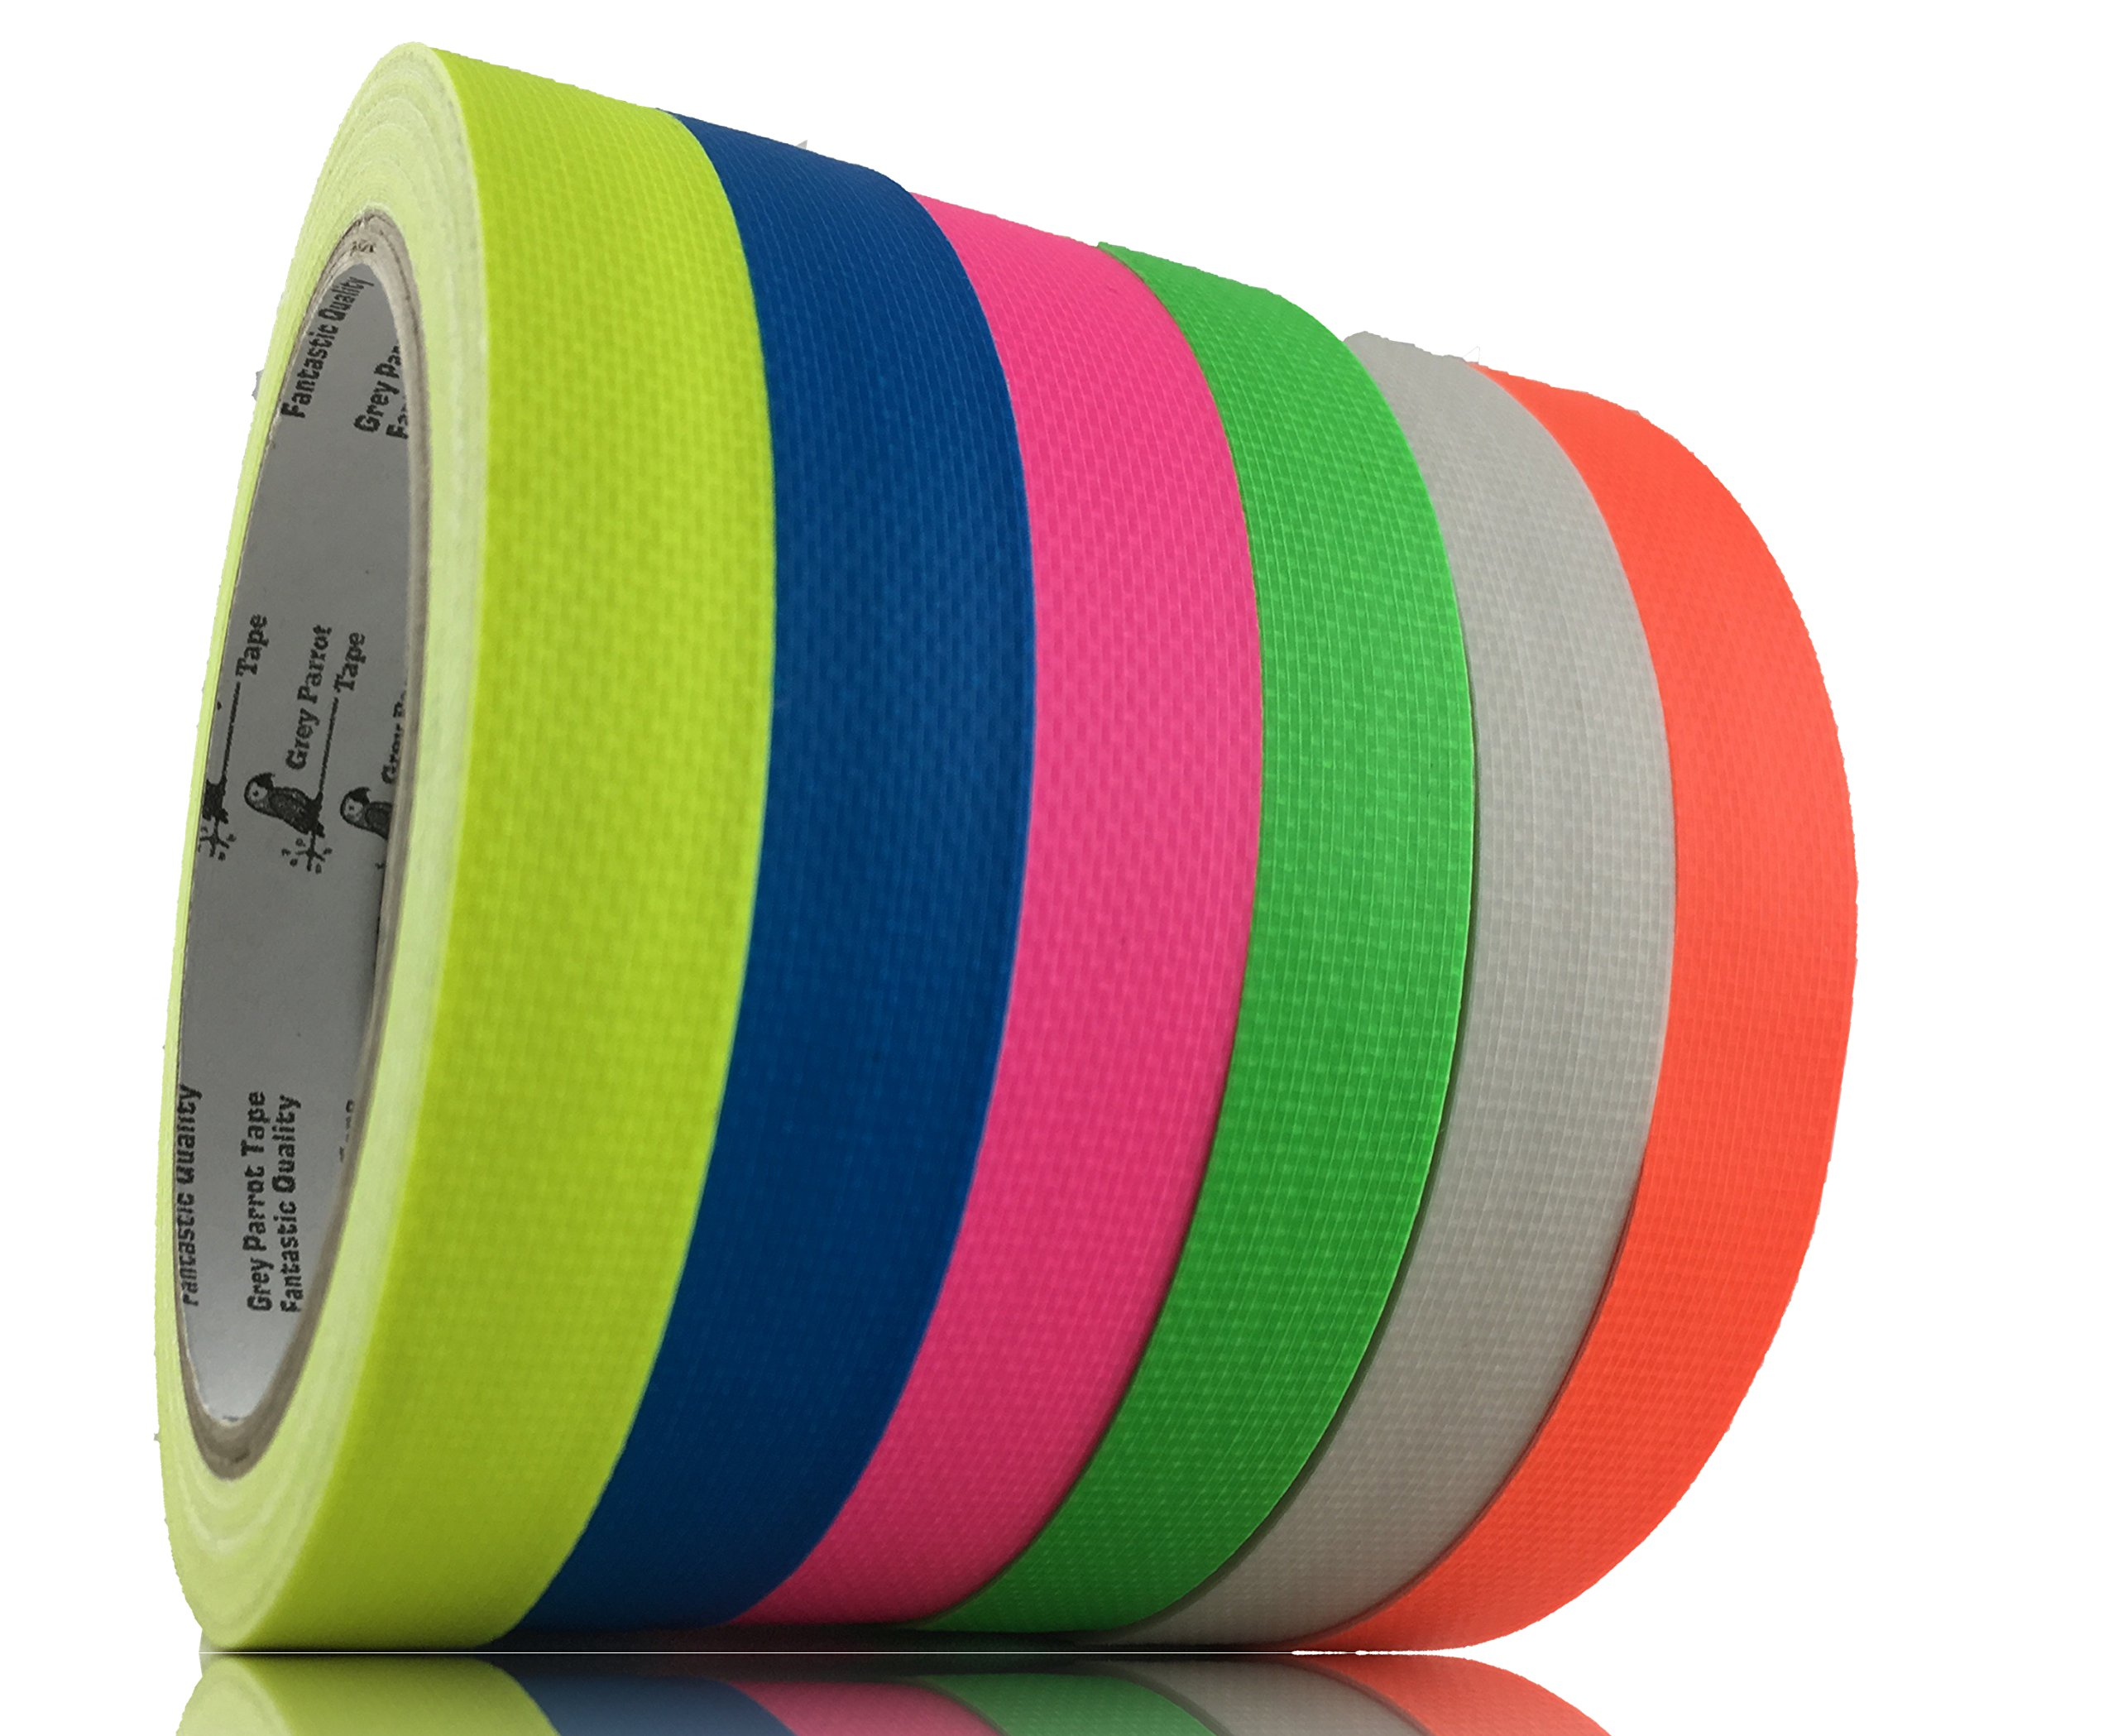 GreyParrot Tape UV Blacklight Reactive, (6 Pack)(1in x 50ft), Fluorescent Cloth Tape, 11.8mil Thickness by GreyParrot Tape